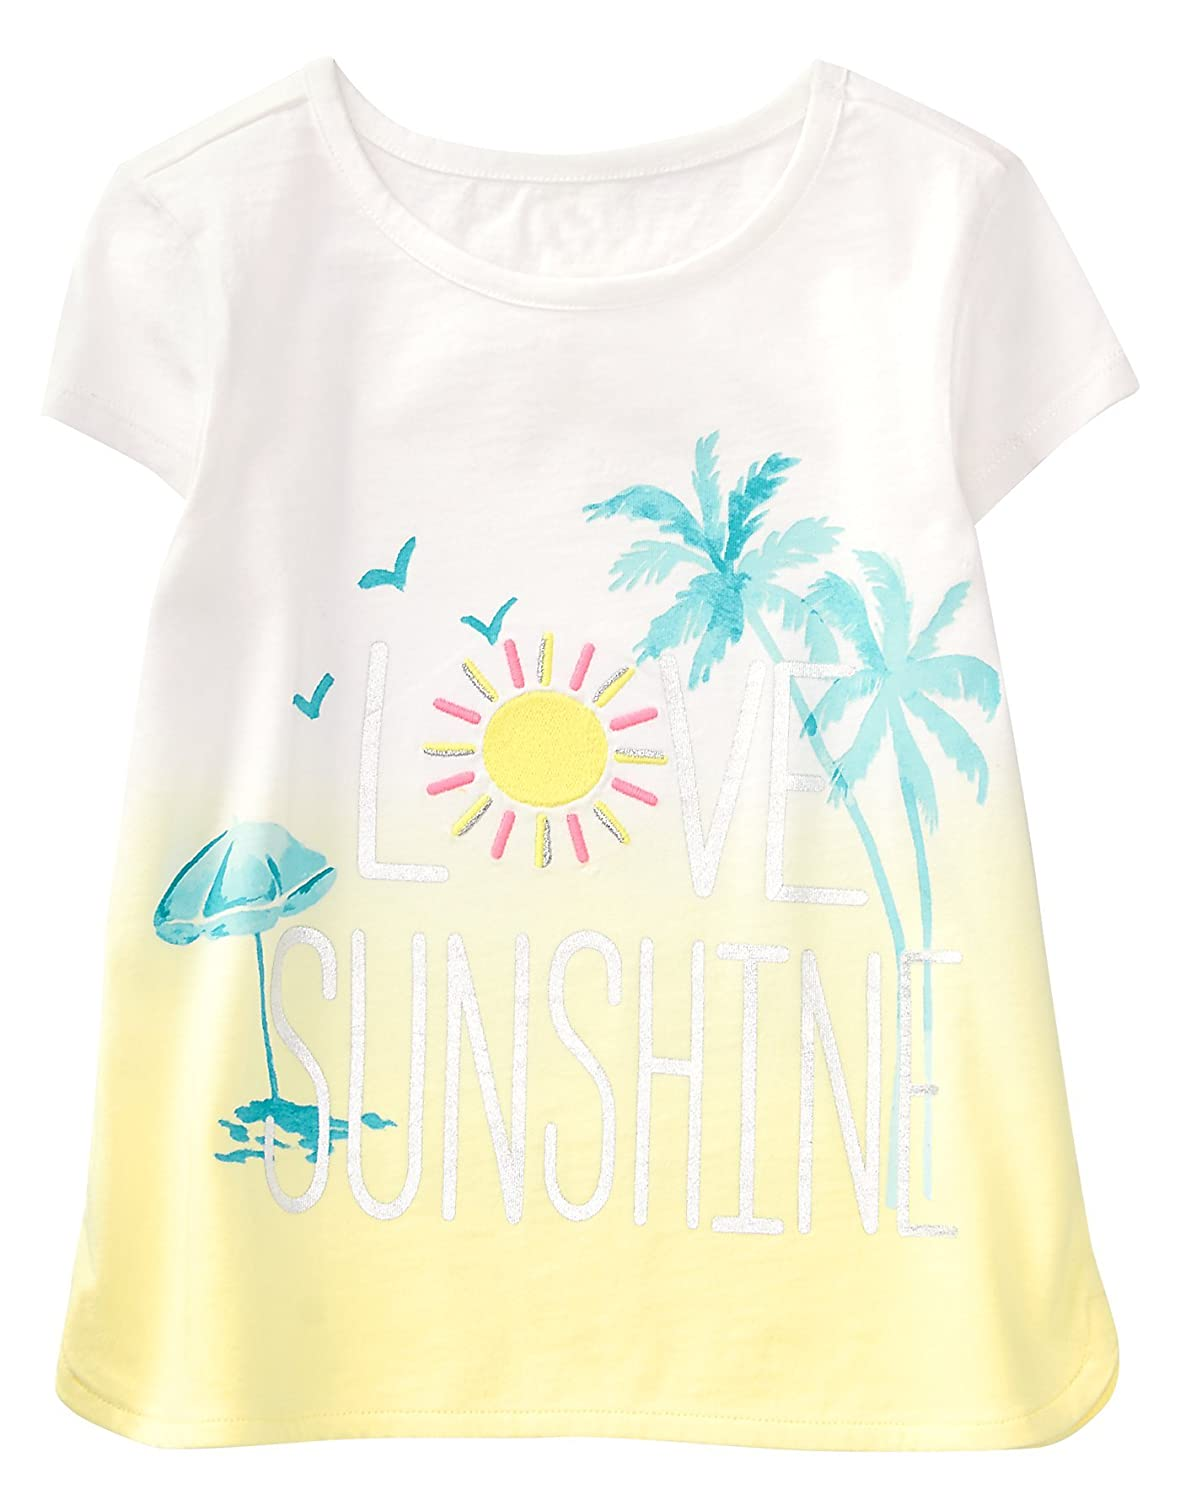 人気アイテム Gymboree SHIRT ベビーガールズ X-Large B07C7H2VZH White Love Sunshine Sunshine X-Large X-Large|White B07C7H2VZH Love Sunshine, 桐箱空間:0849ed26 --- mail.mrplusfm.net